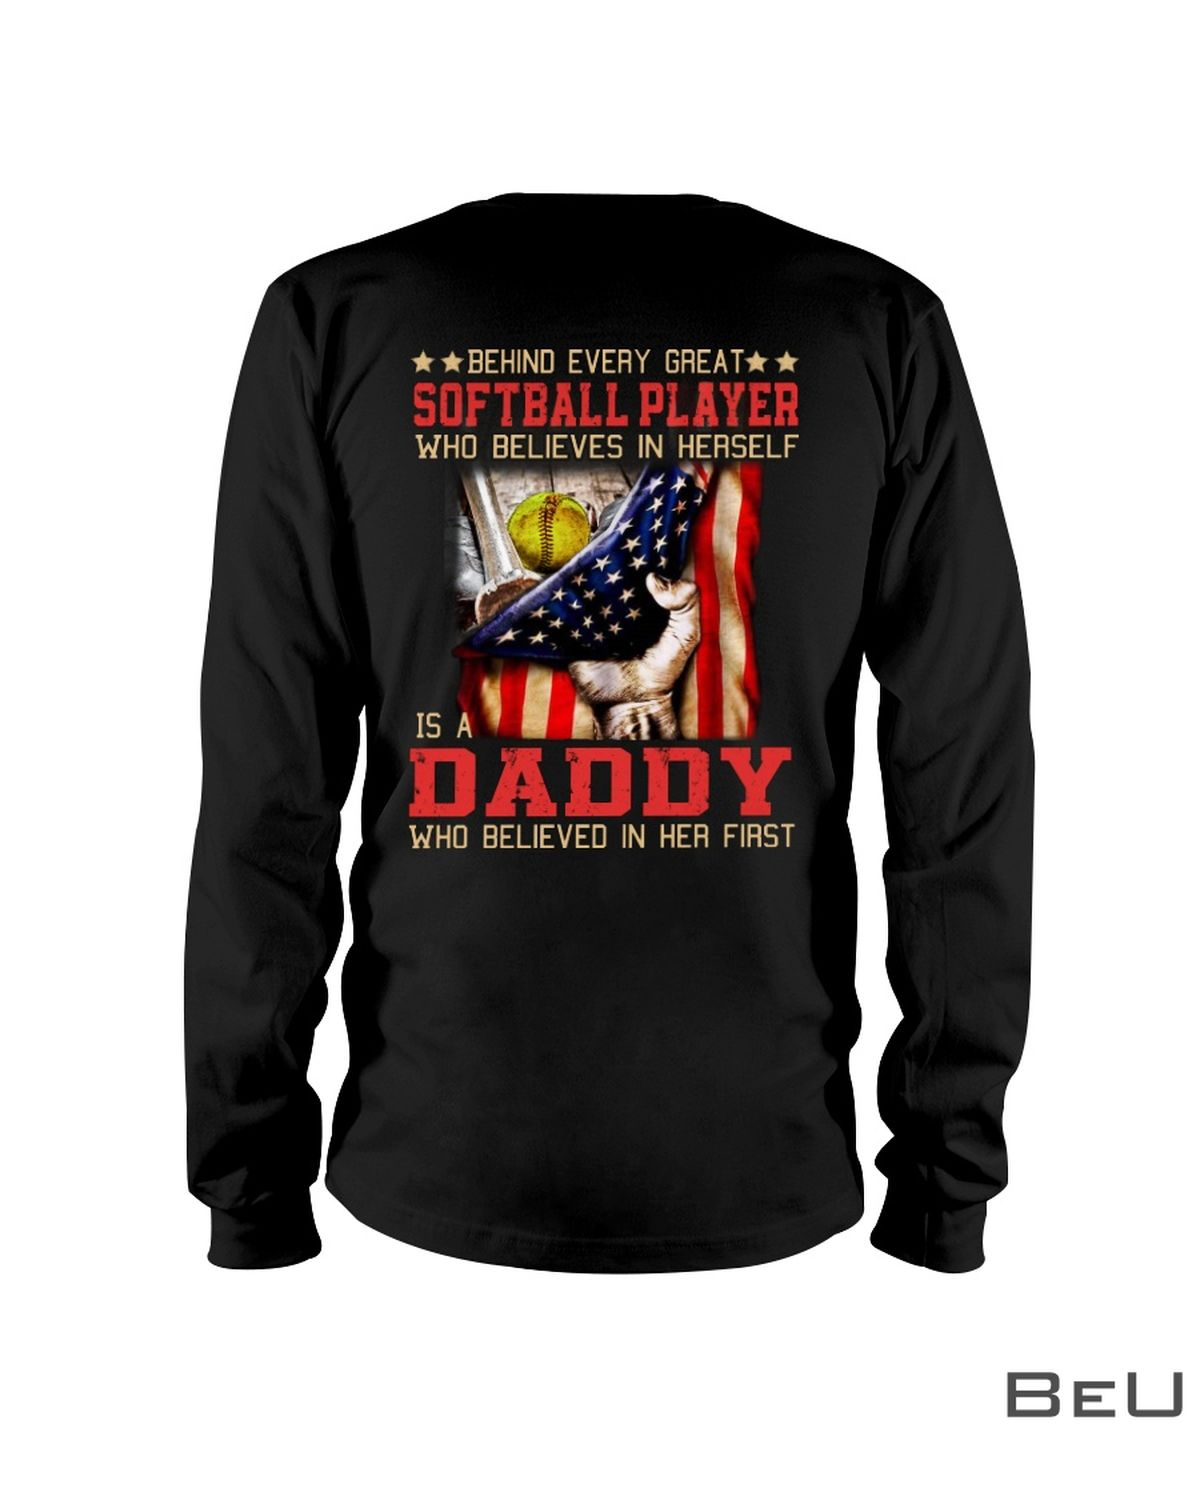 Behind Every Great Softball Player Who Believes In Herself Is A Daddy Shirt c